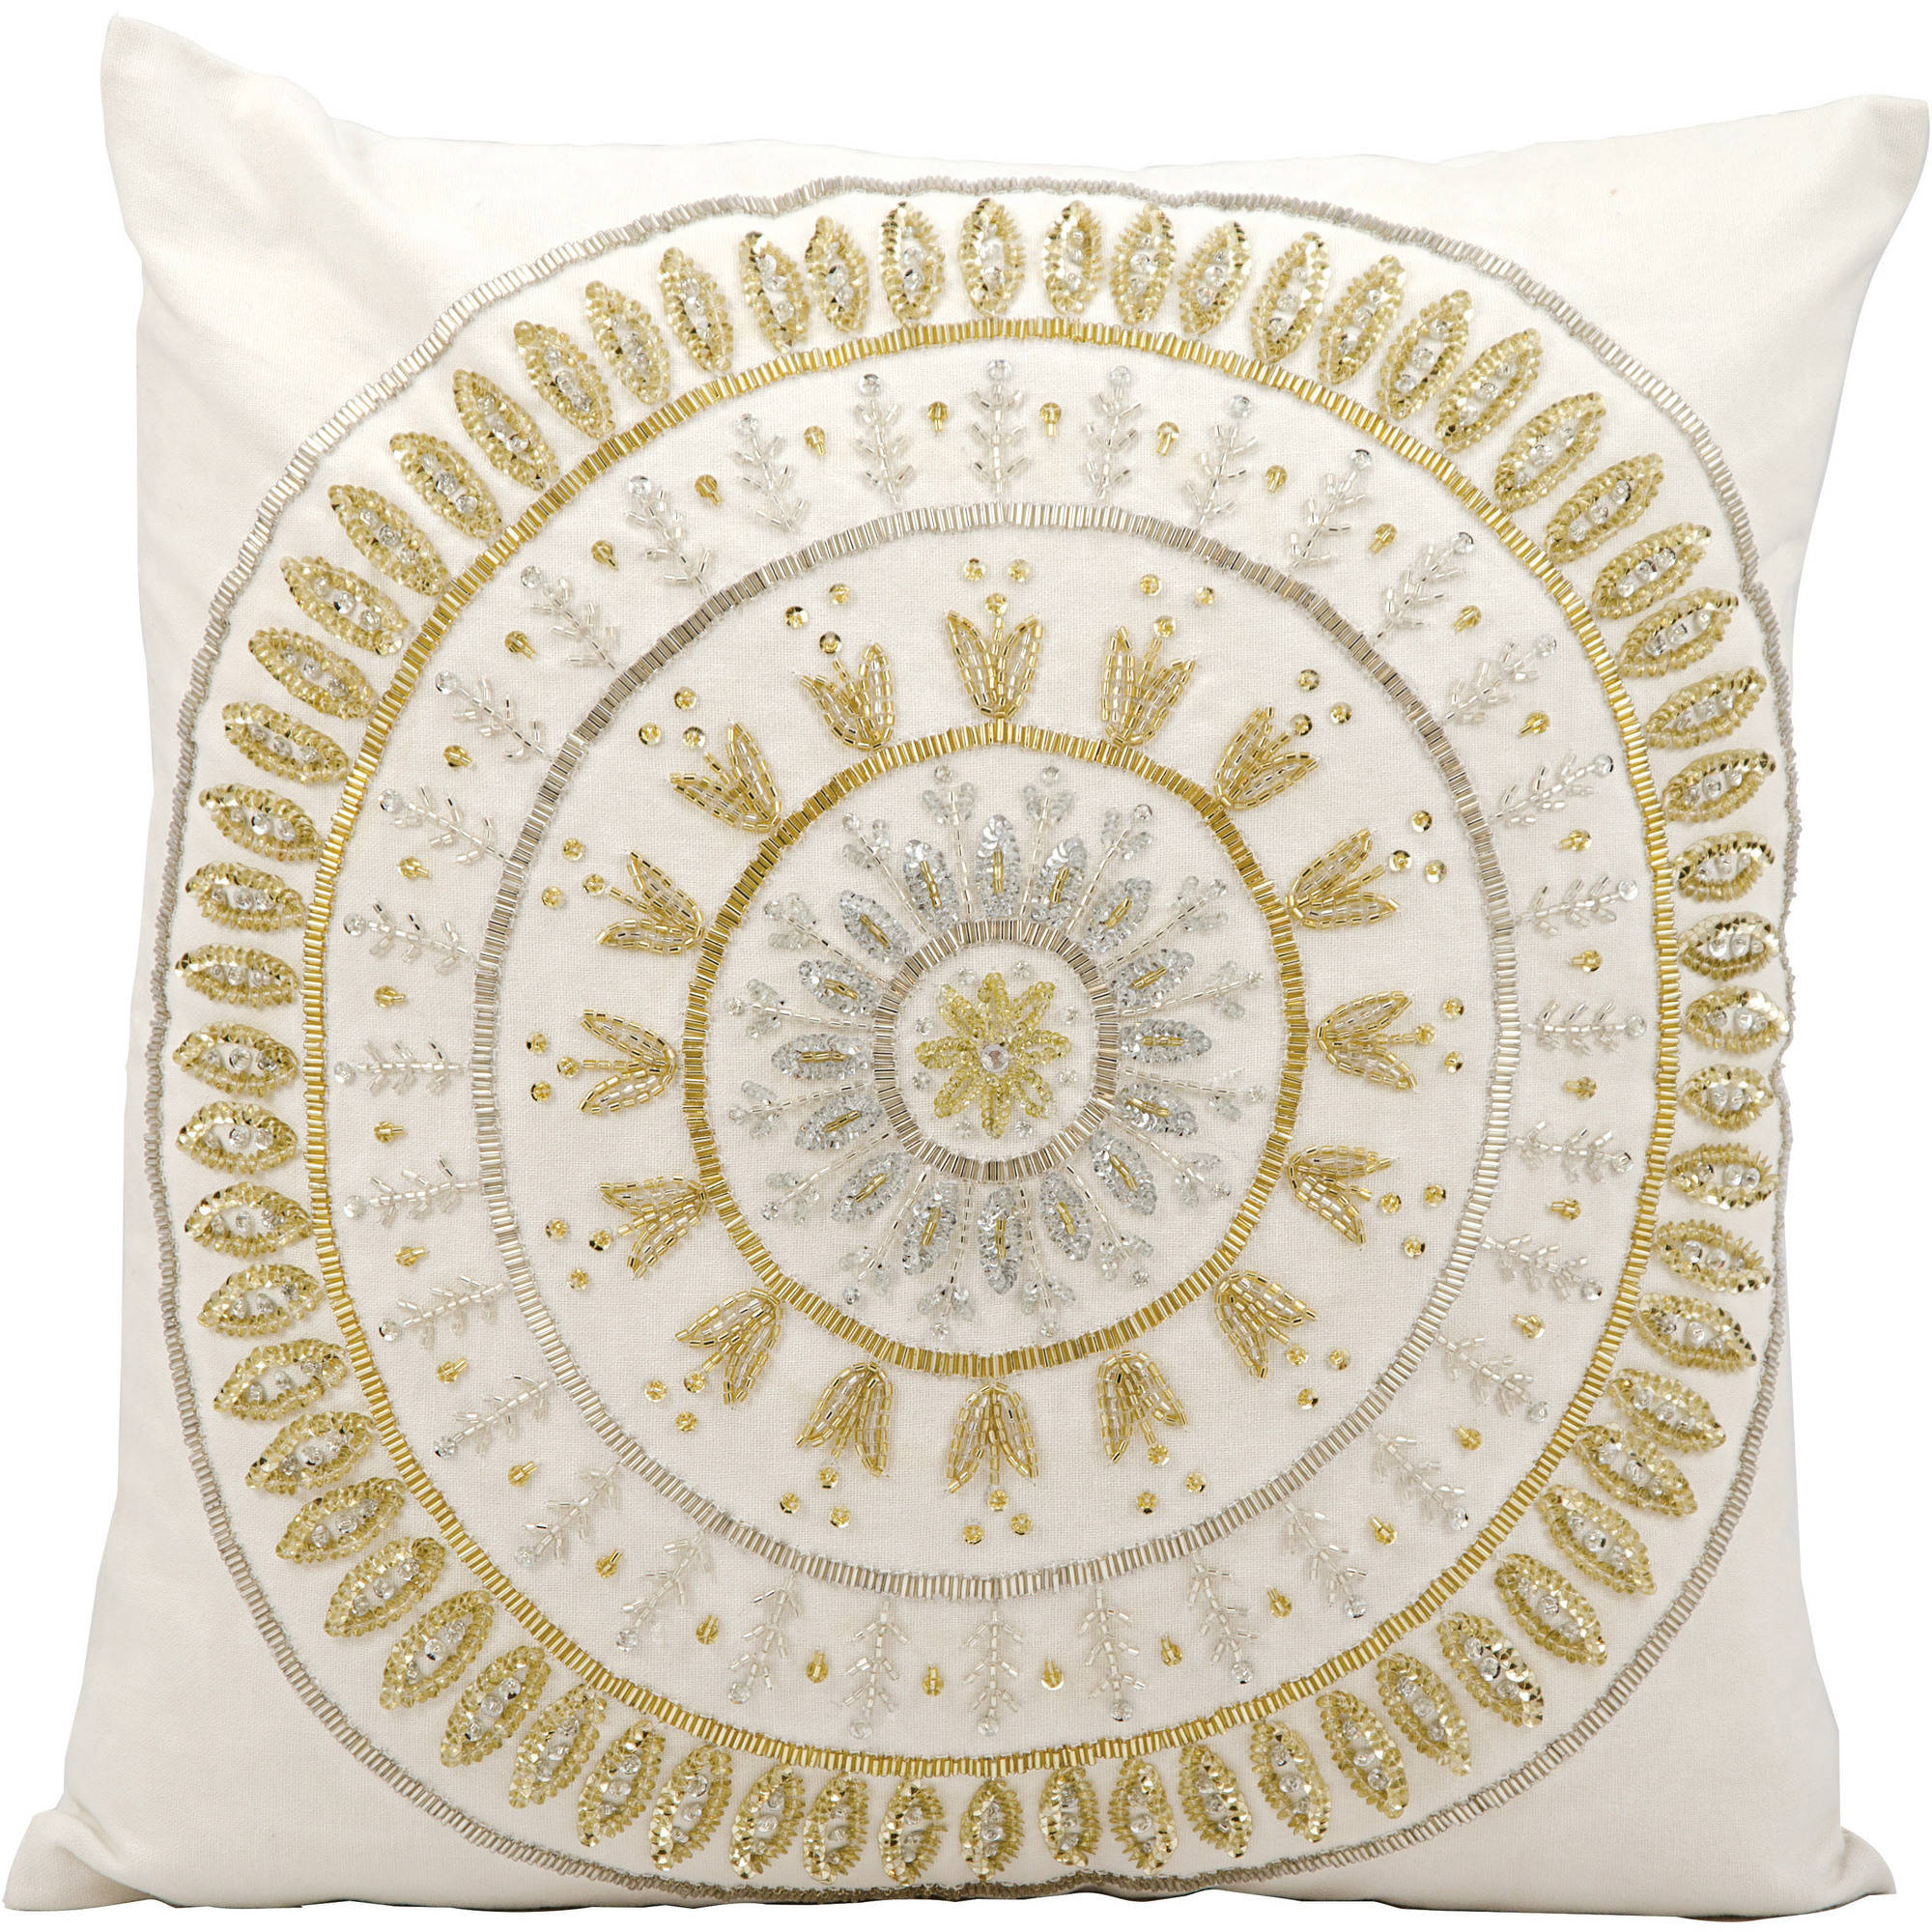 """Michael Amini Beaded Sun Decorative Throw Pillow By Nourison, Ivory Gold, 18"""" X 18"""" by Nourison"""